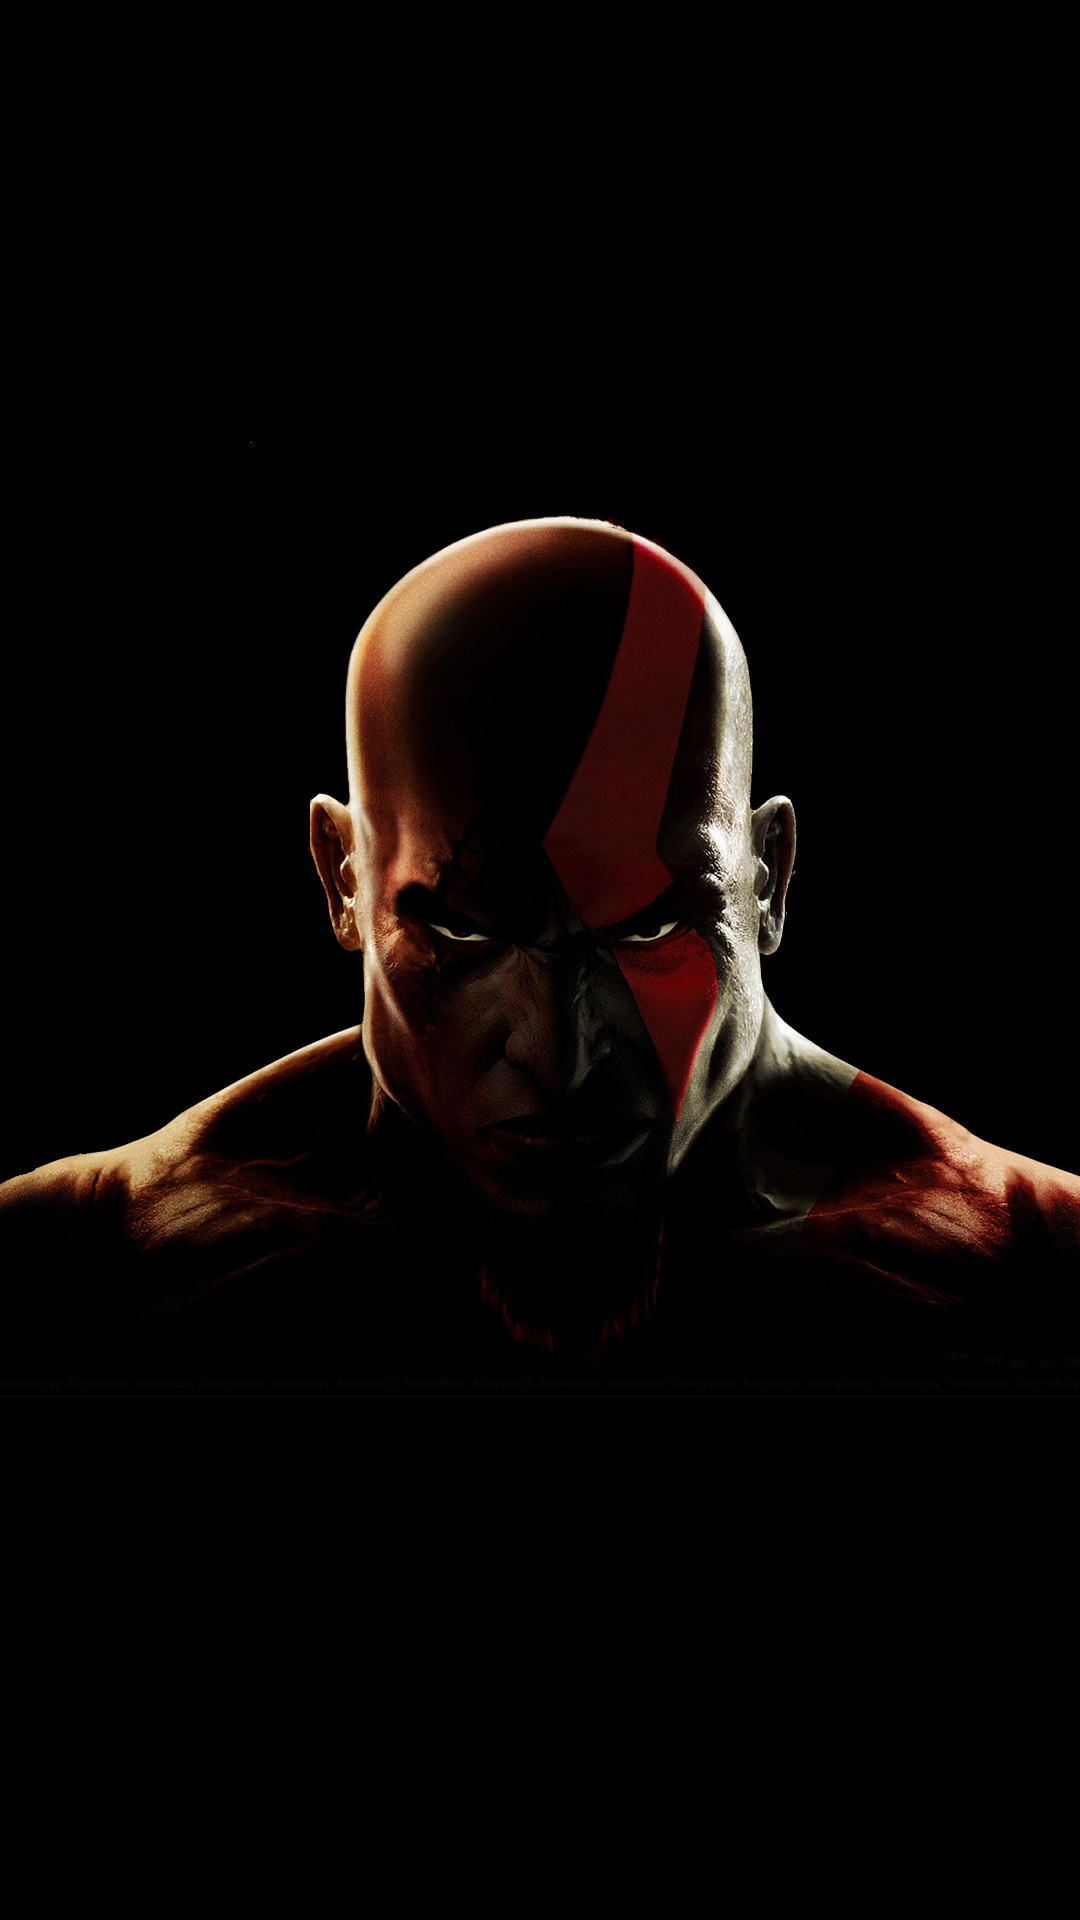 1080x1920 Kratos God Of War Warrior Iphone 7 6s 6 Plus